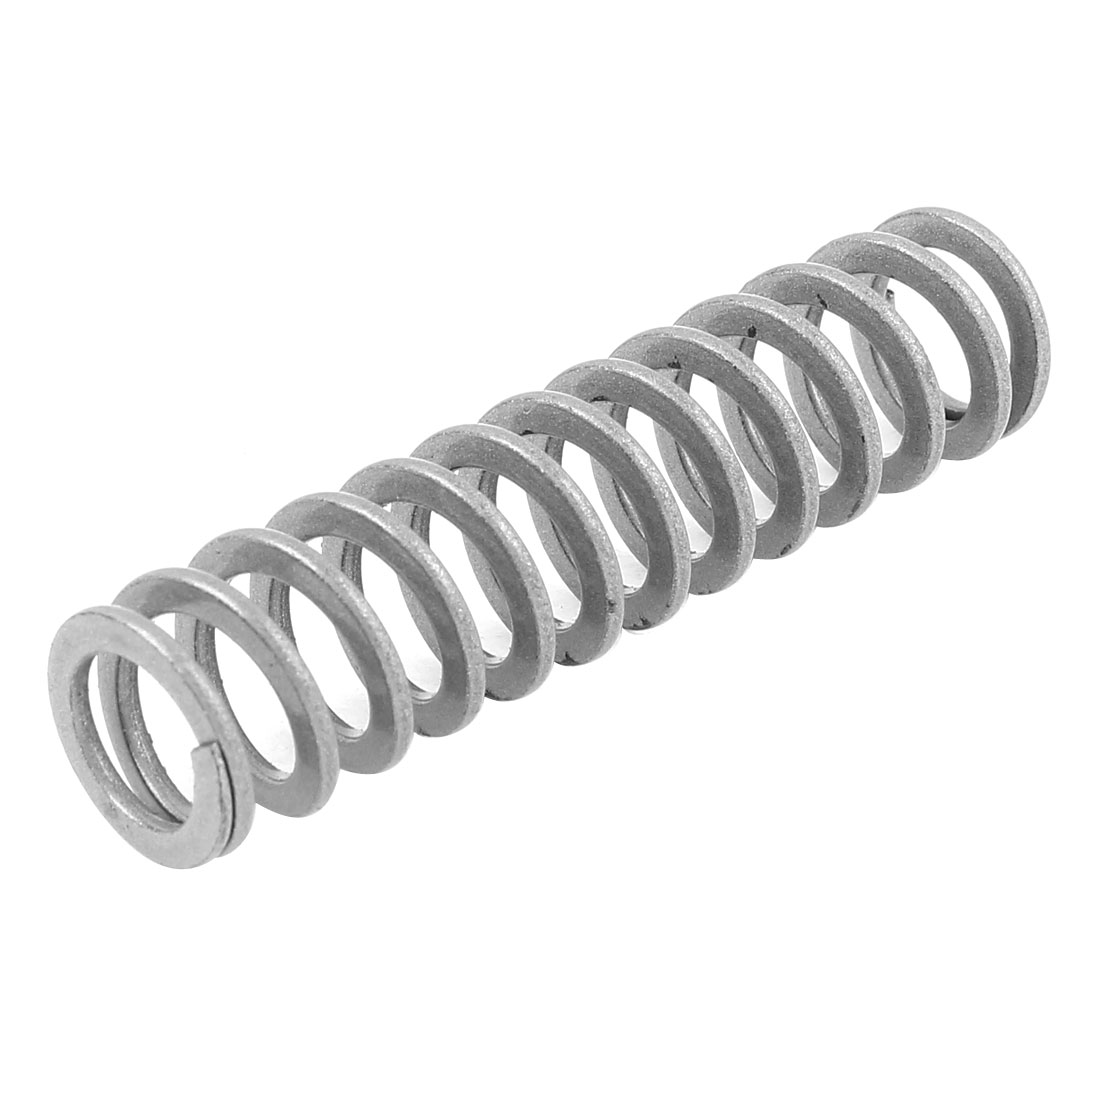 Silver Tone Alloy Steel Extra Light Load Press Compression Coil Mould Die Spring 17mm x 11mm x 70mm